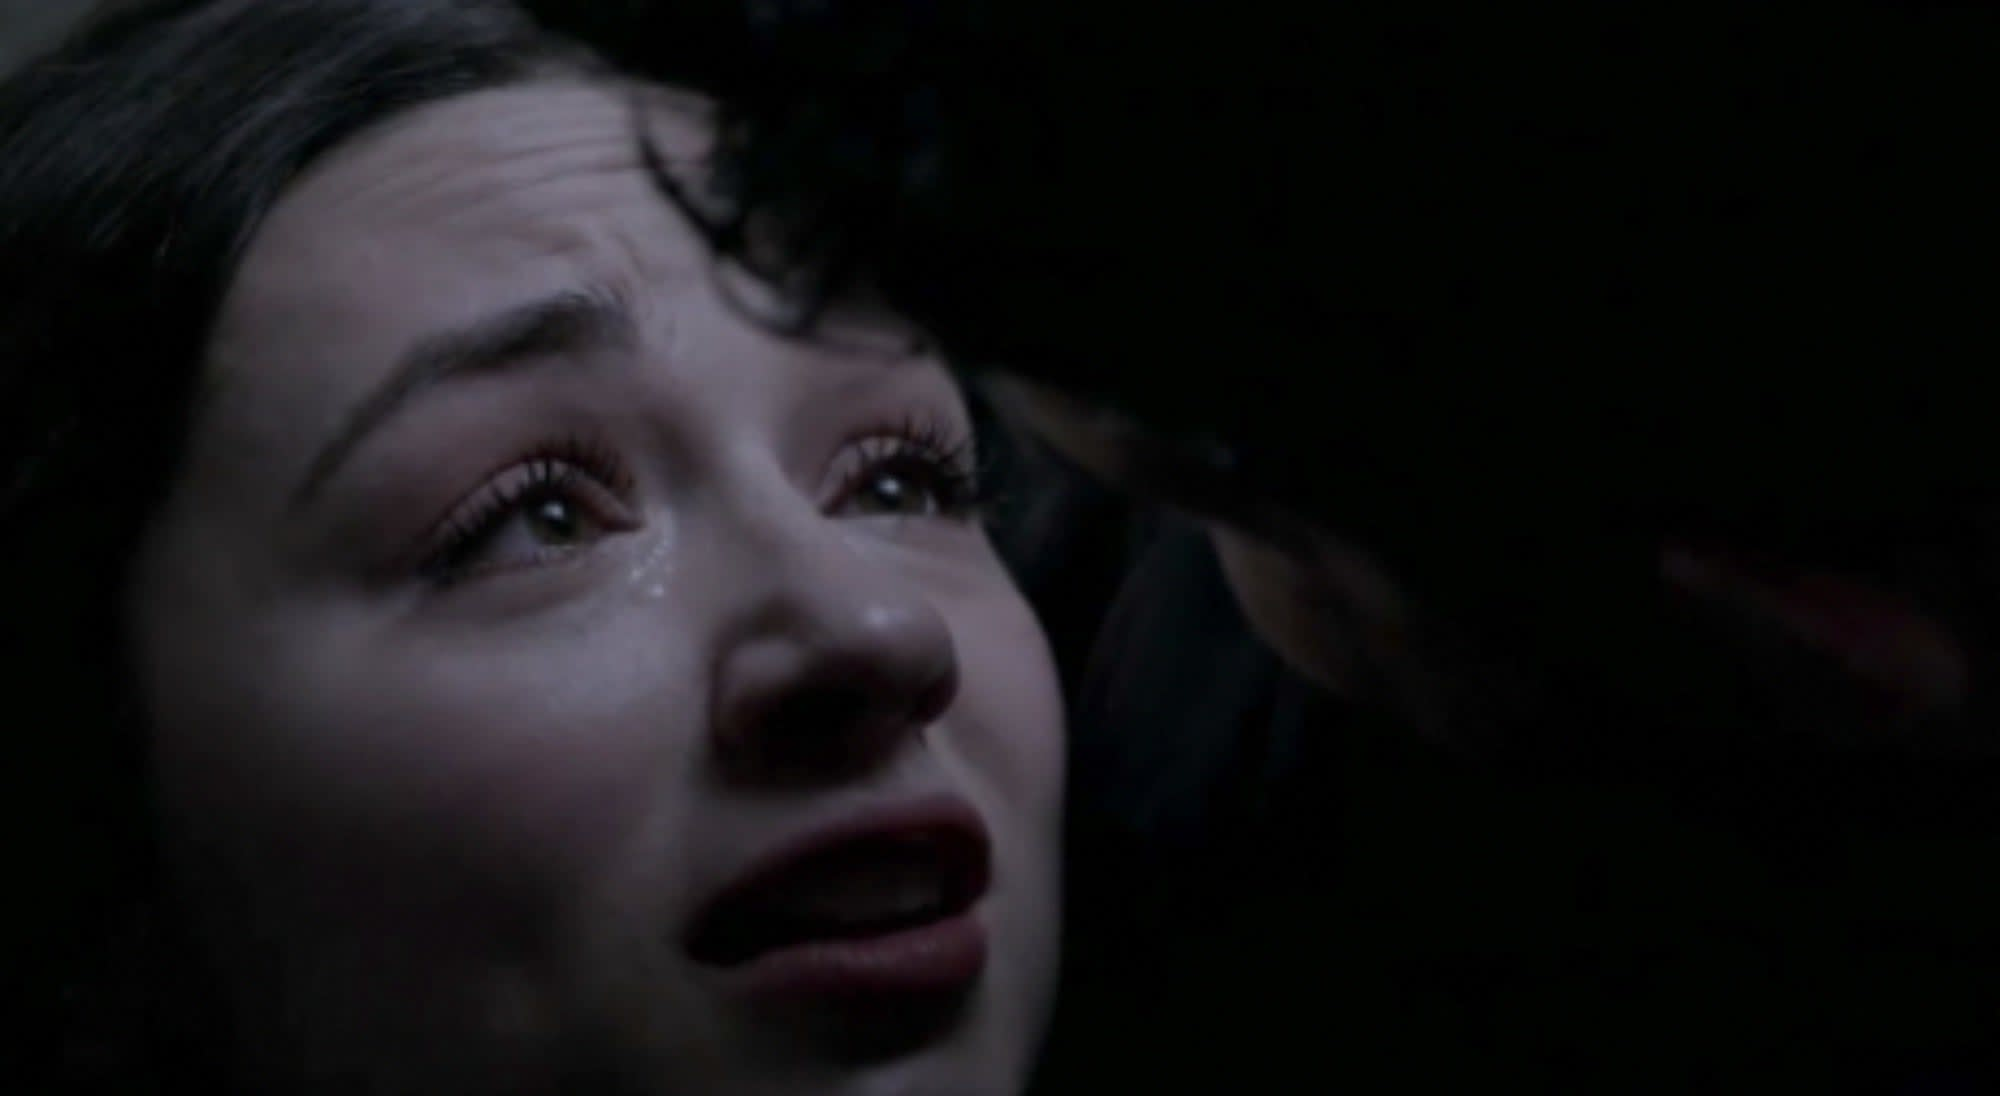 Allison tells Scott she loves him